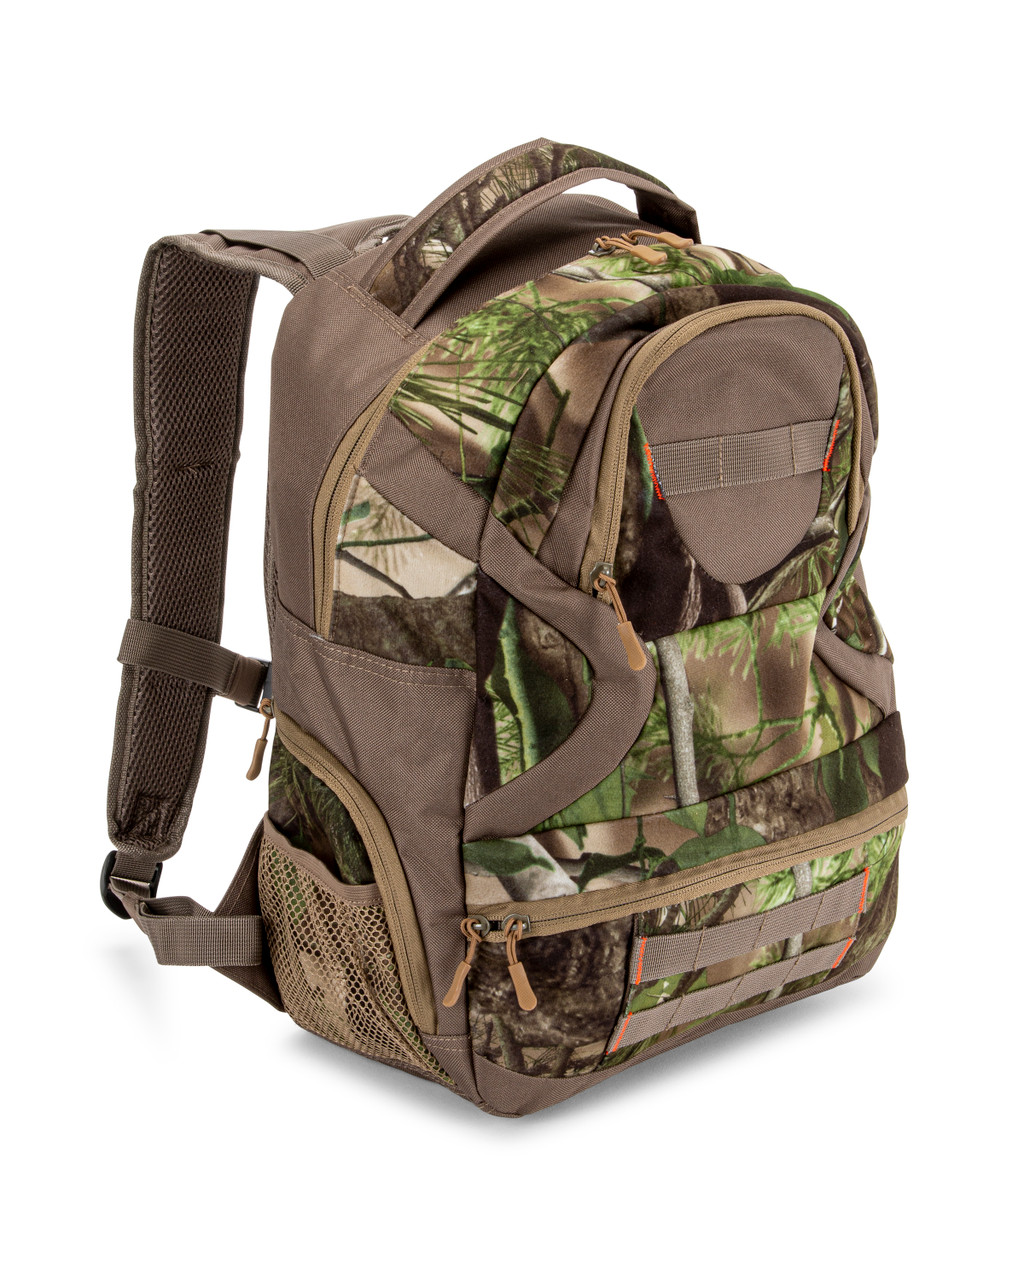 FANNY PACK CAMMO CAMOUFLAGE WOODLAND 4 POCKET LIGHT WEIGHT ADJUSTABLE HUNTING